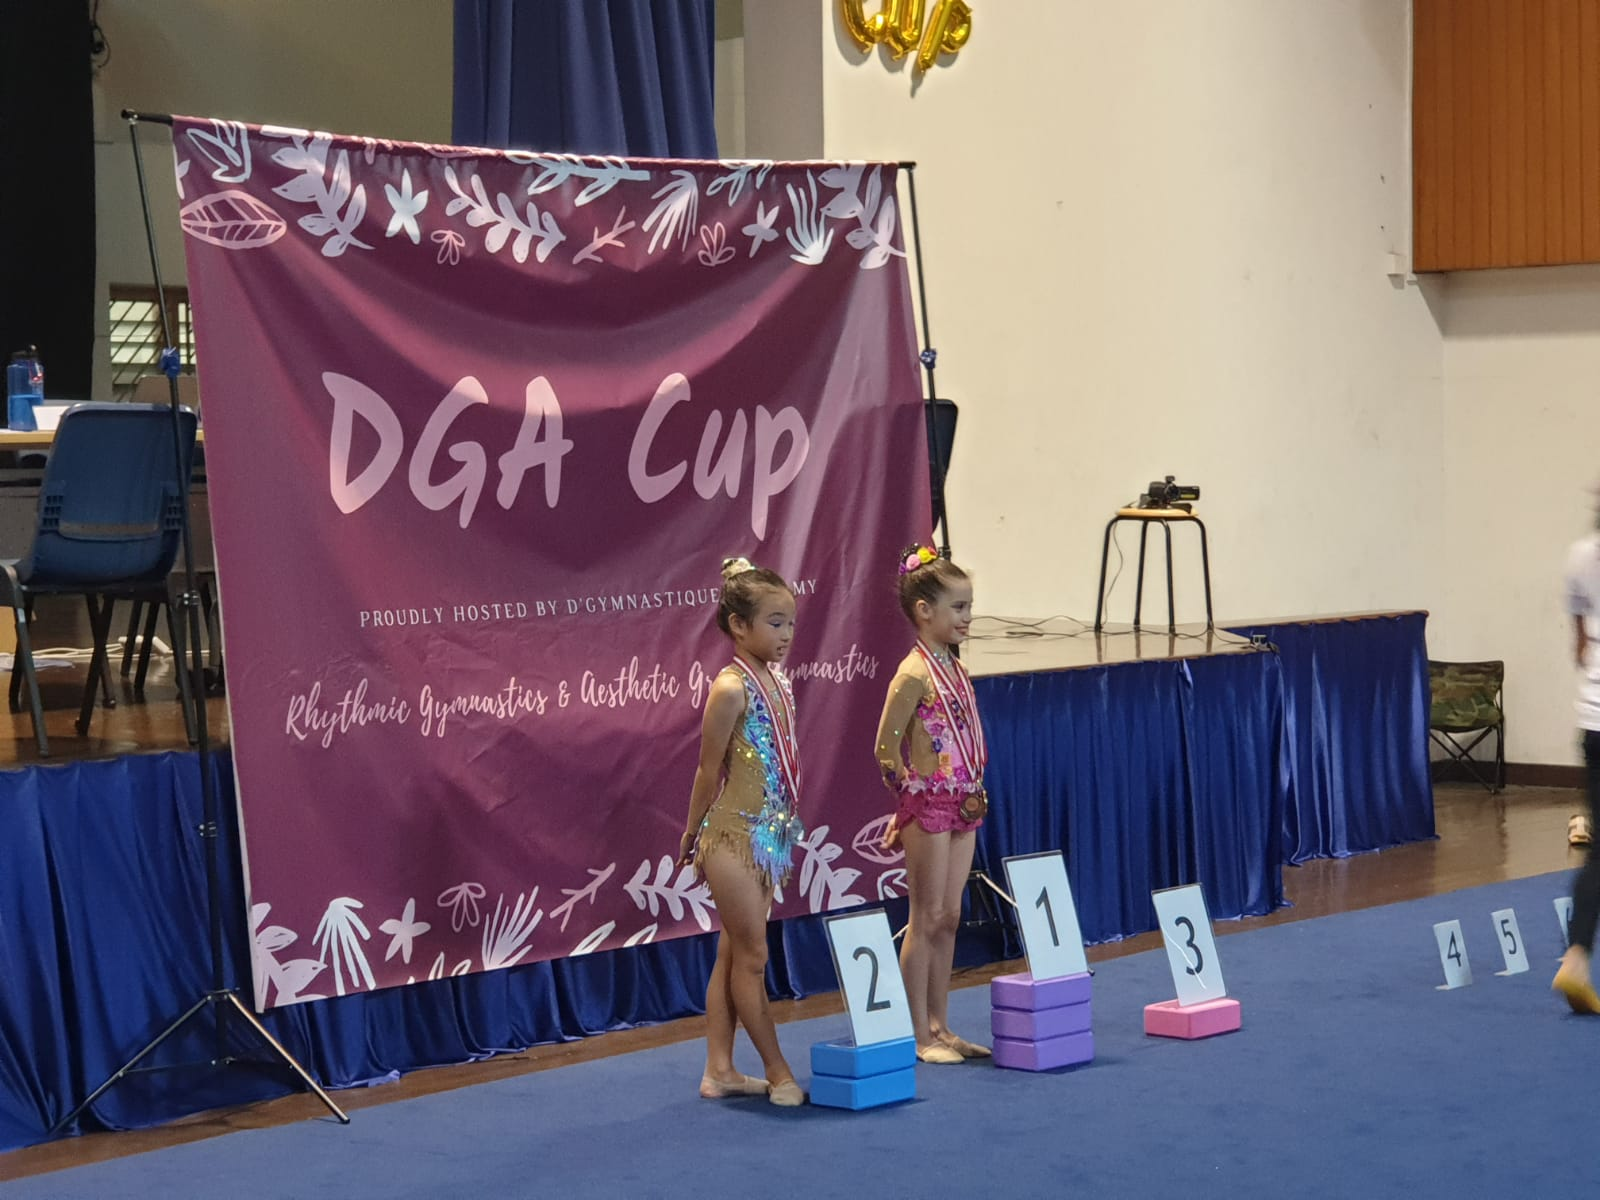 The 1st DGA Cup 2019 21